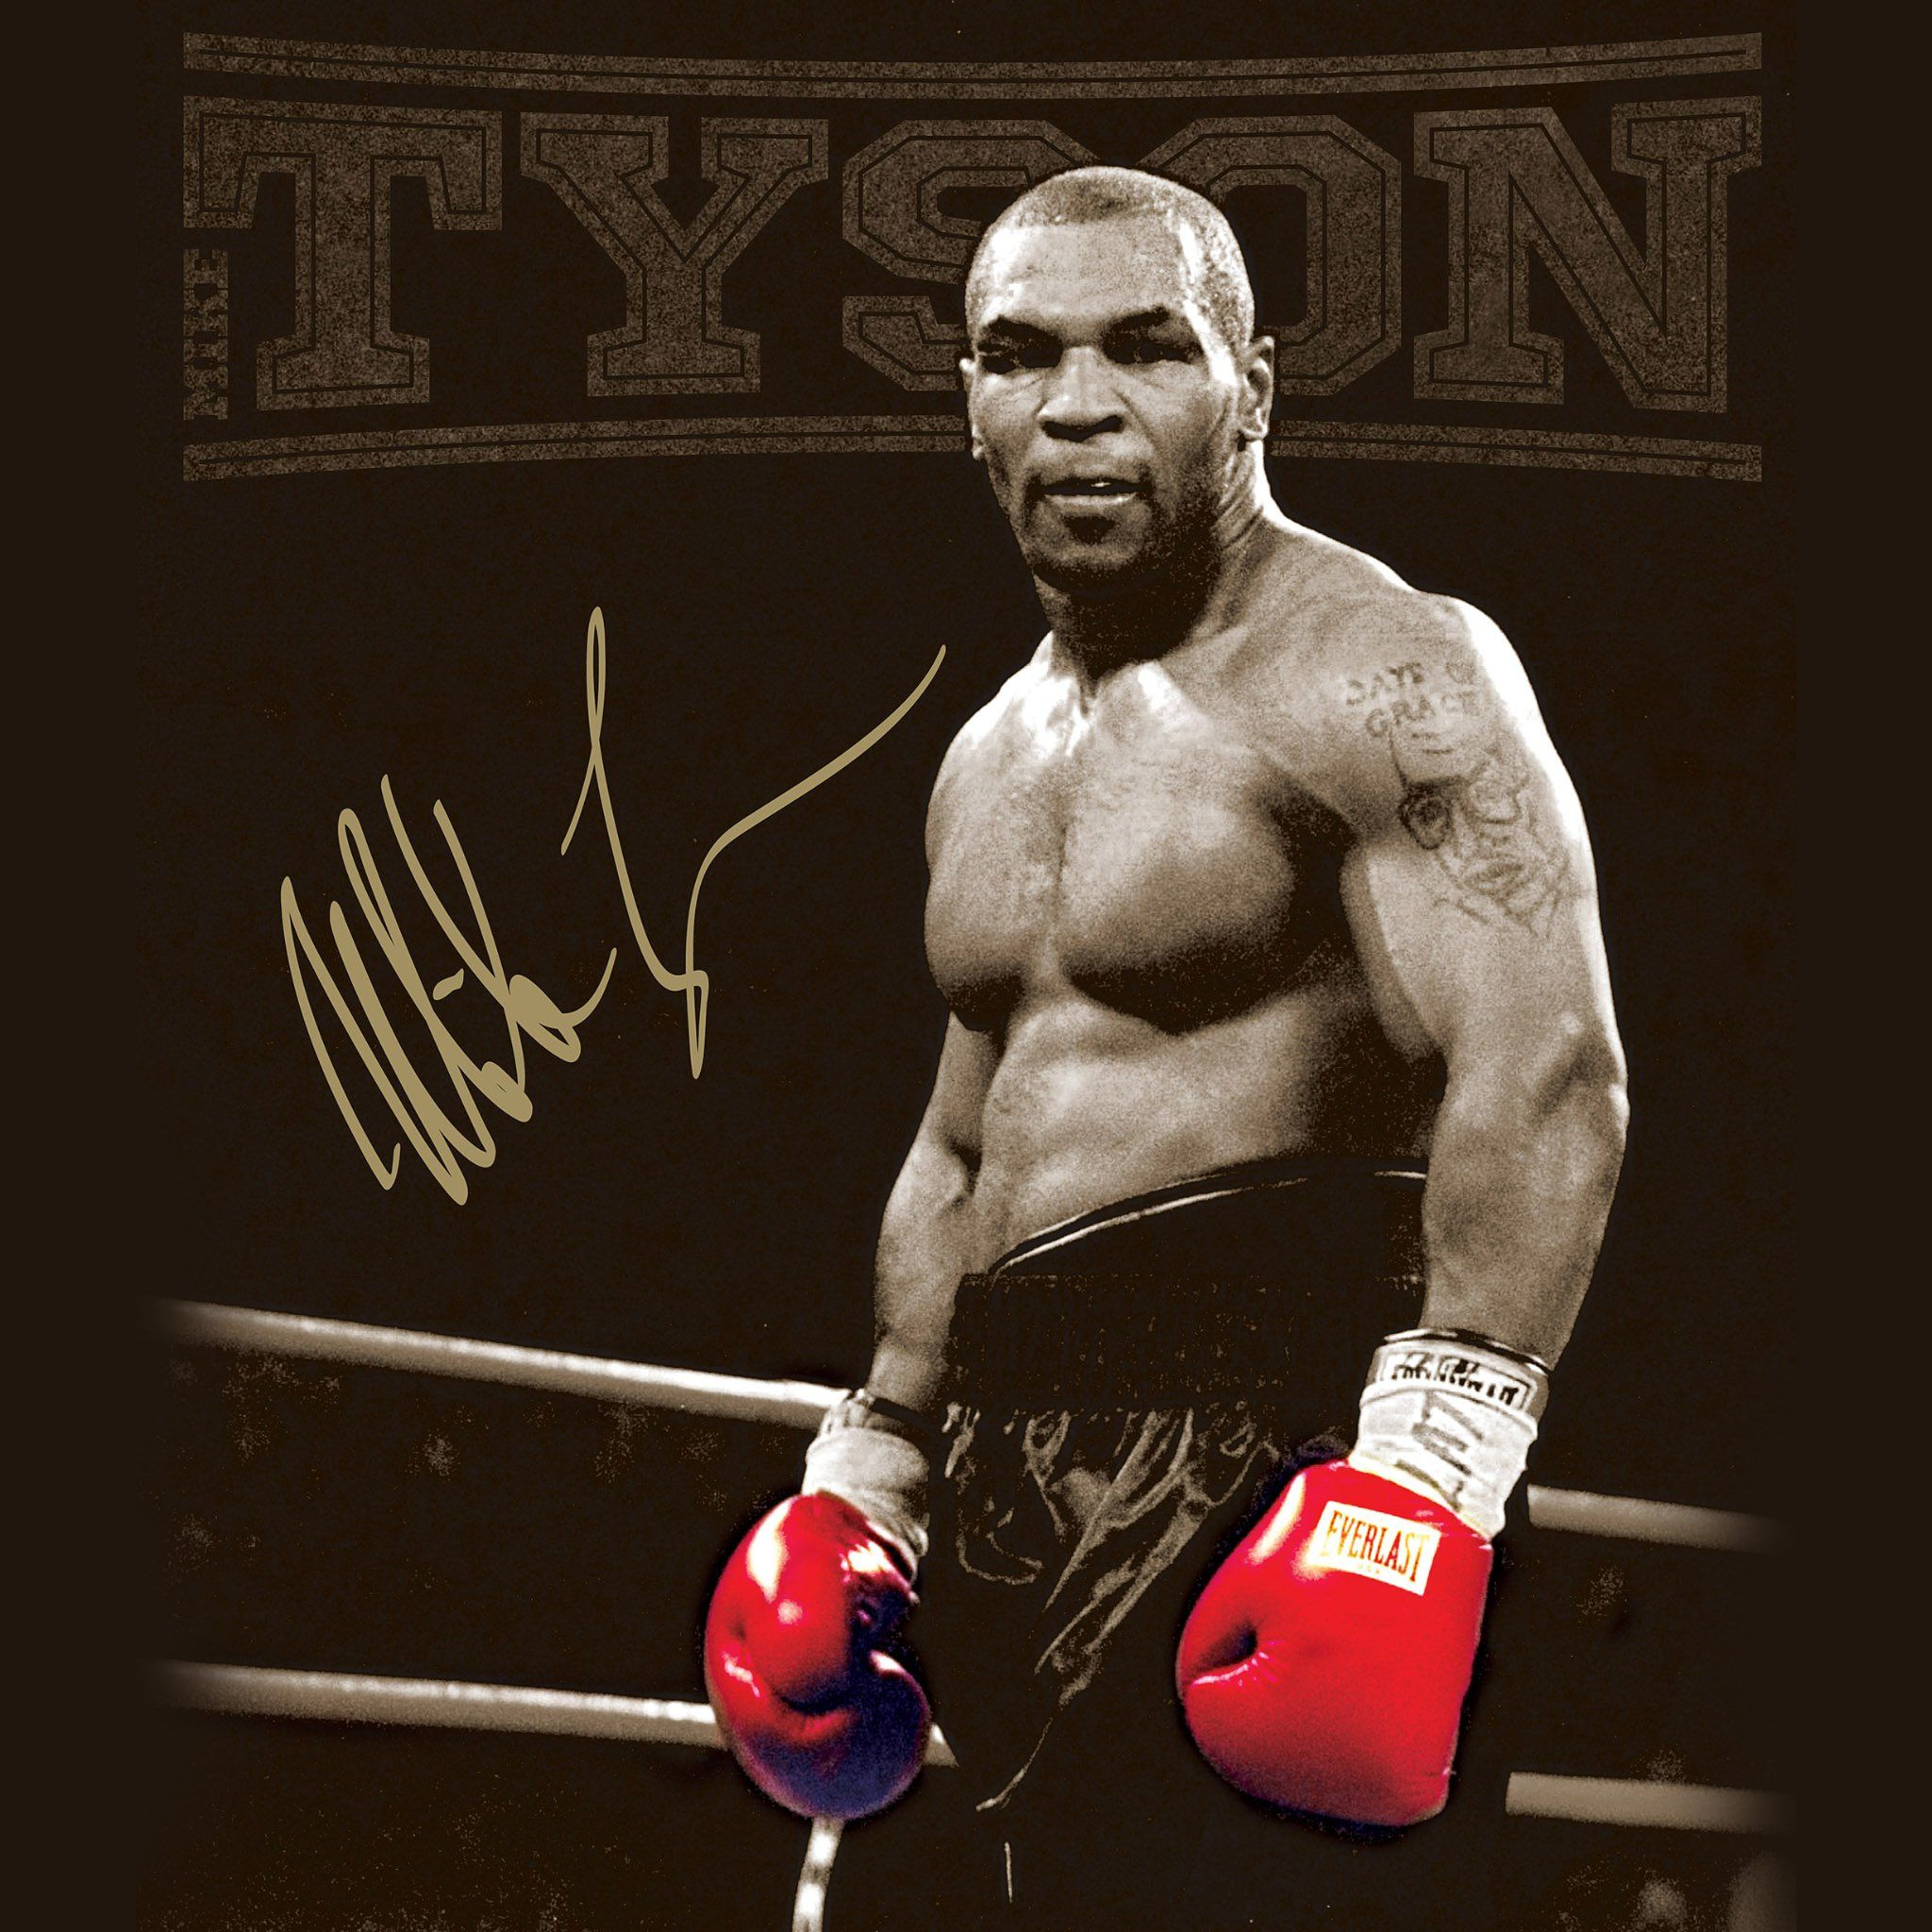 Mike Tyson Wallpapers Hd Mike Tyson Mike Tyson Boxing Tyson Boxer